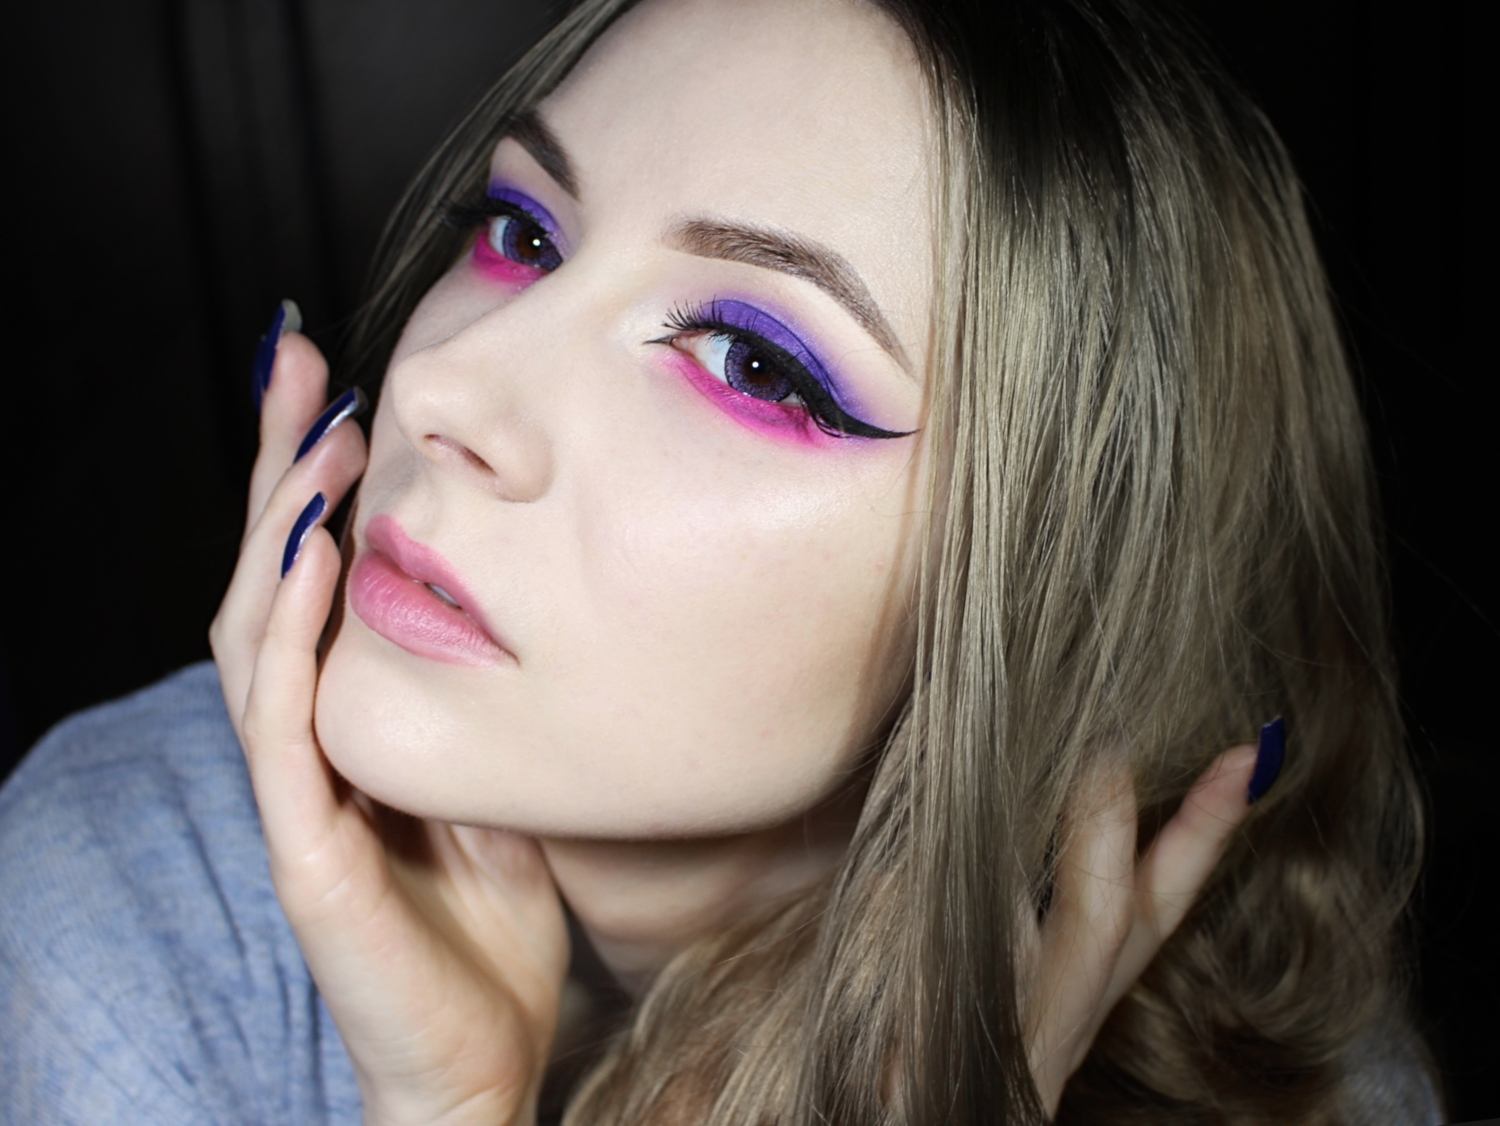 girl with beautiful purple and pink cat eye makeup look with enlarging circle lenses